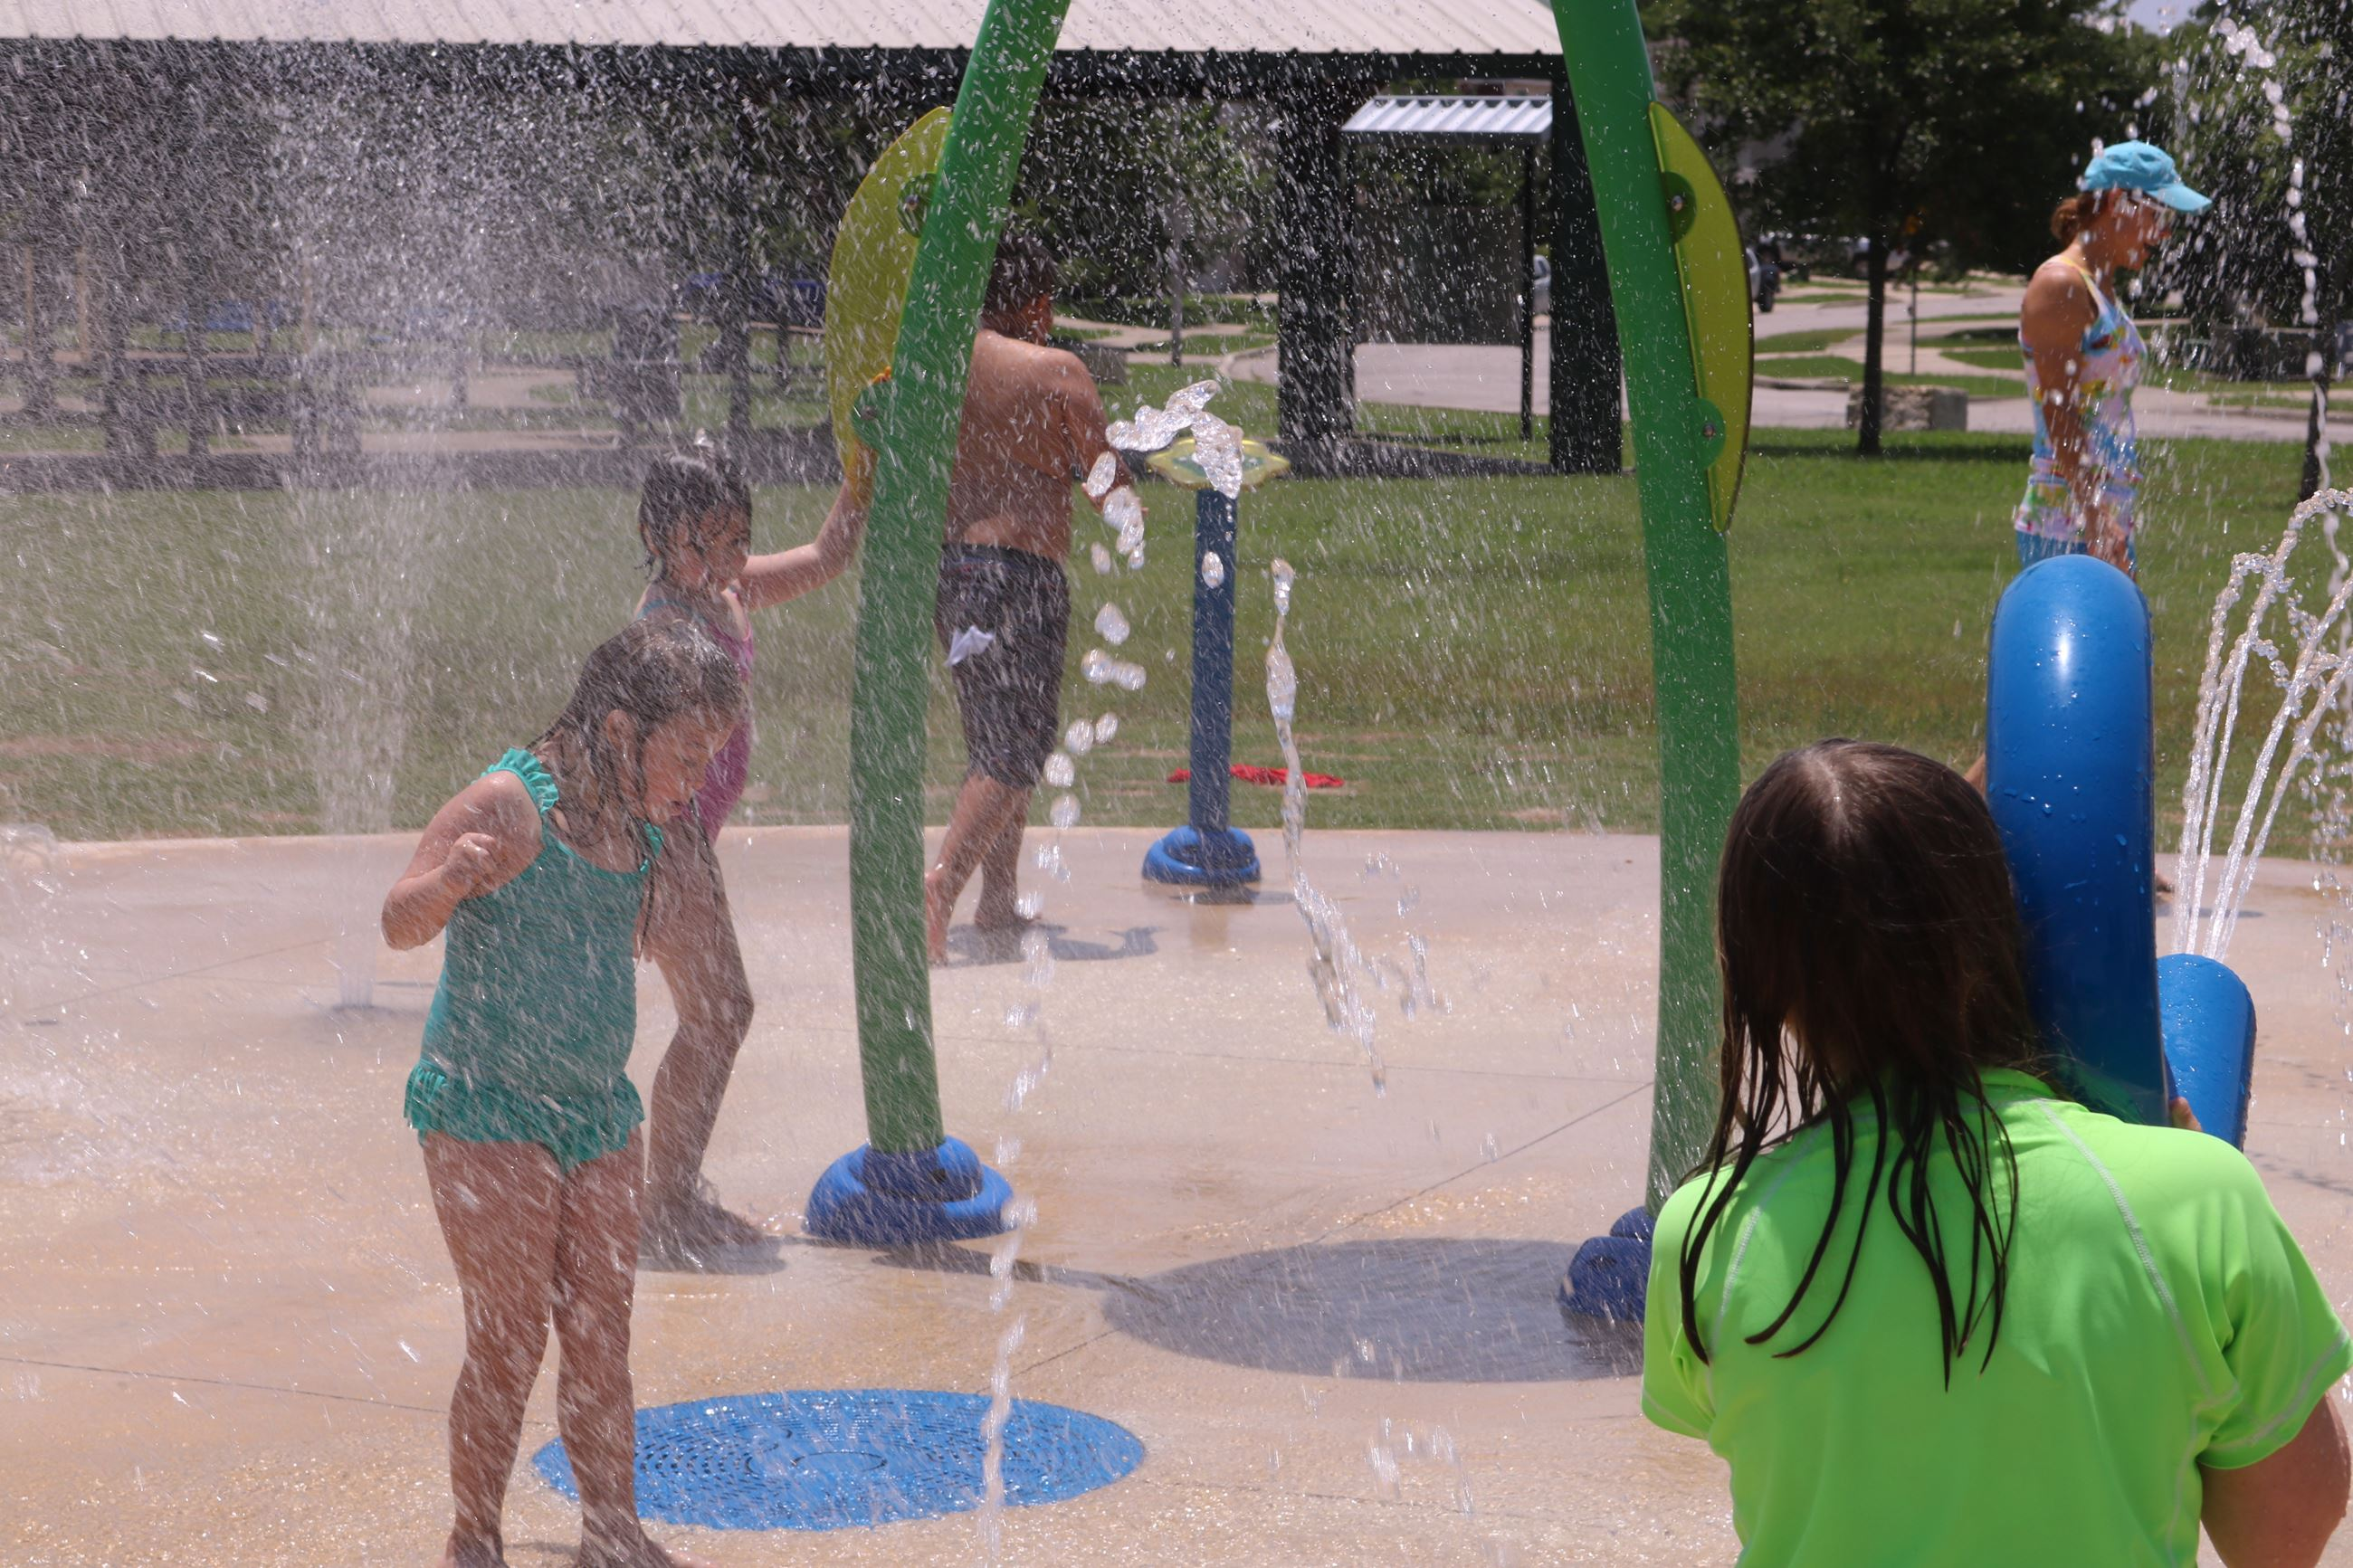 Shows Green Meadows Splash Pad With Kids Playing